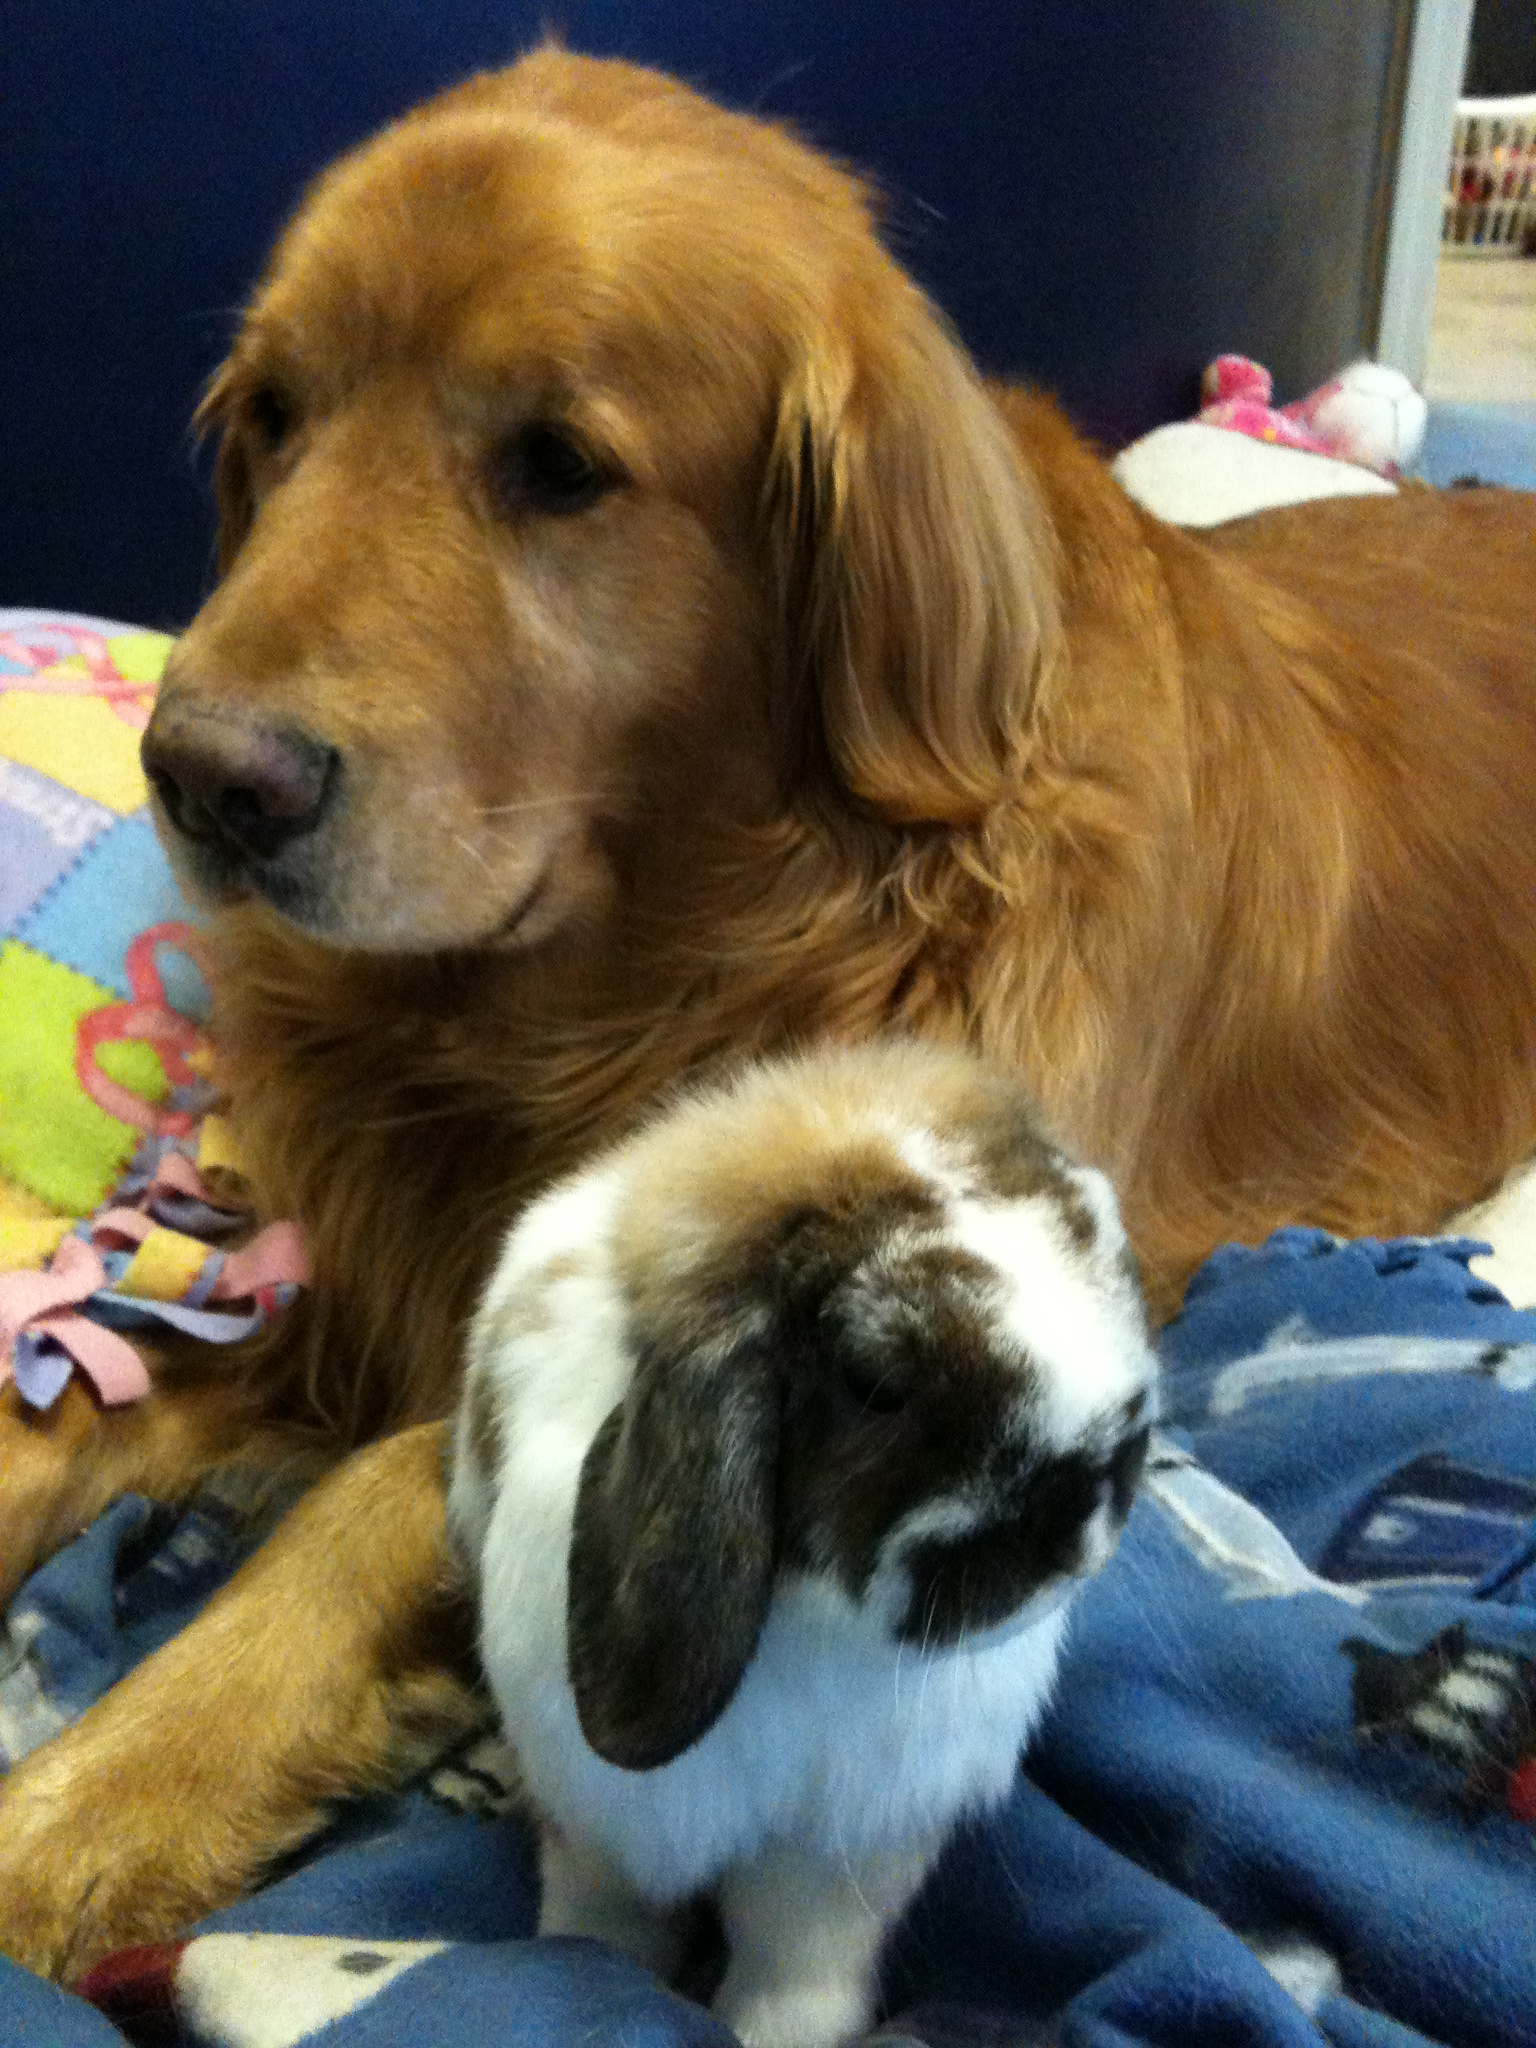 Jackson and his bunny Flopsy